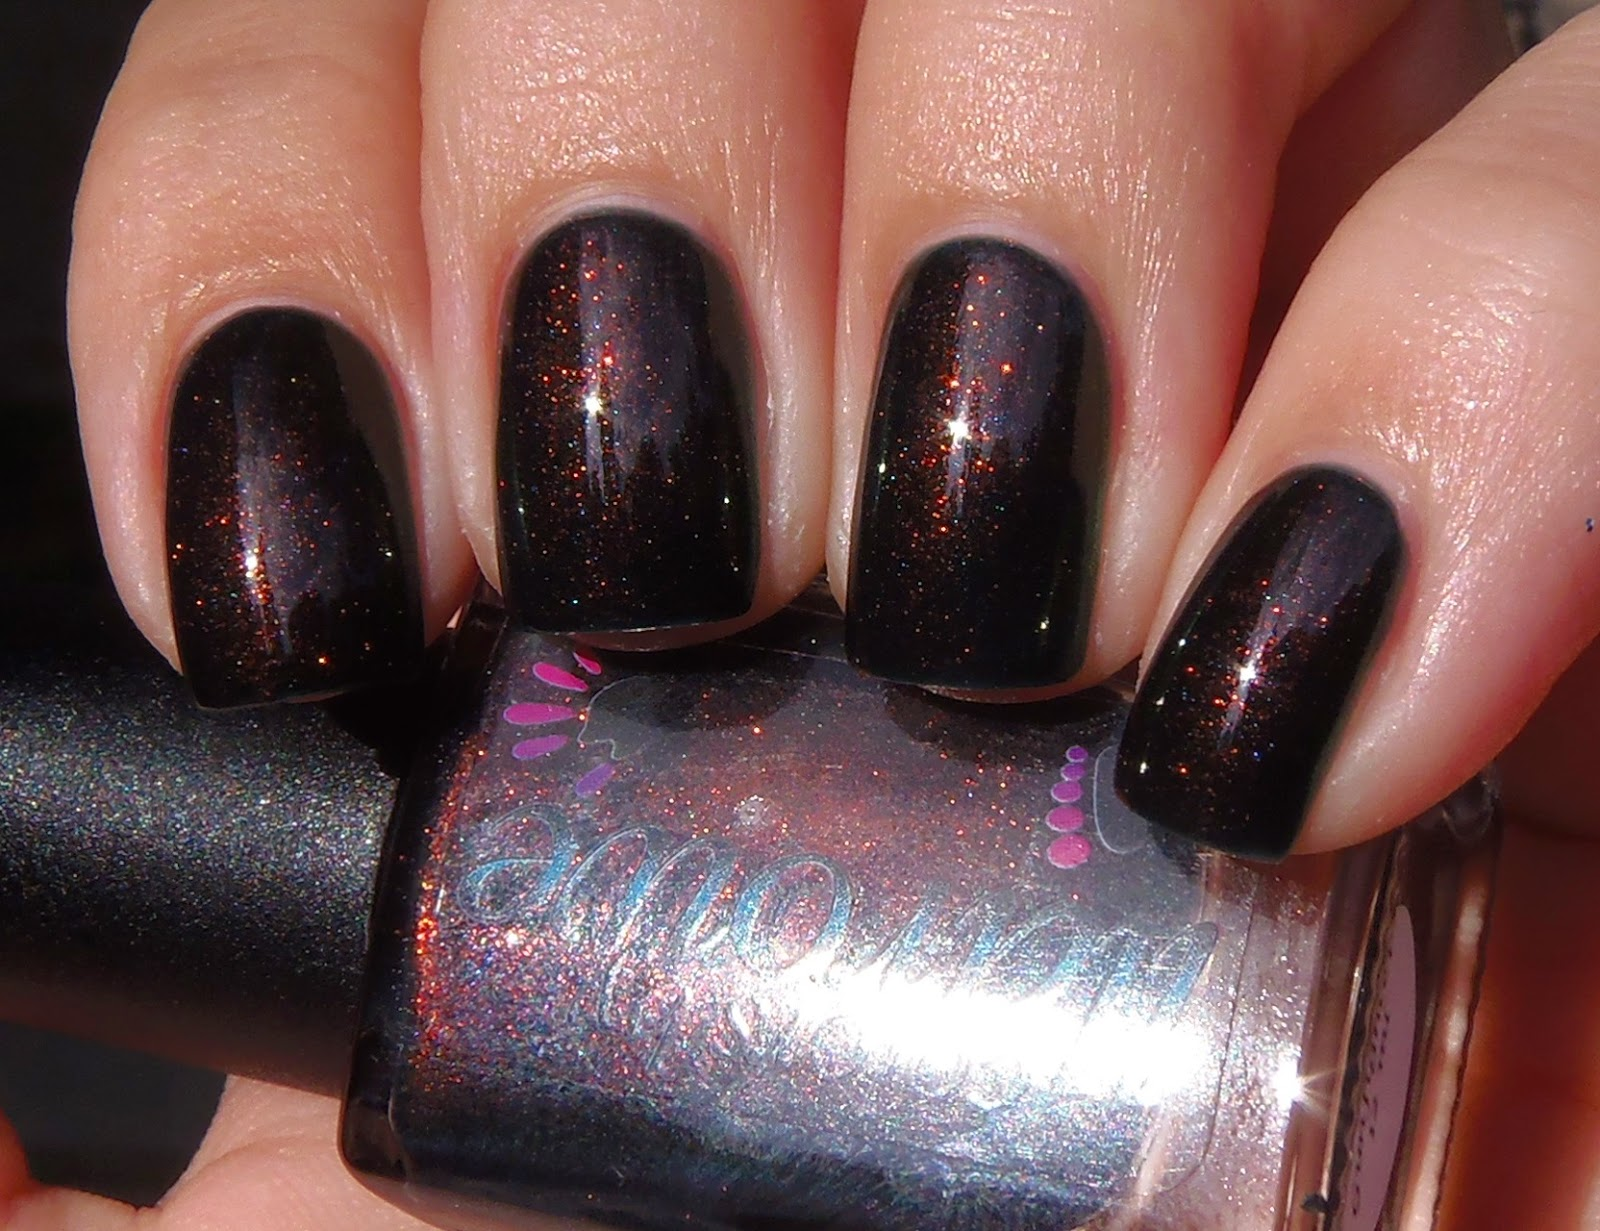 Sparkly Vernis: Colors by Llarowe Gunfighter is a shimmery dark green